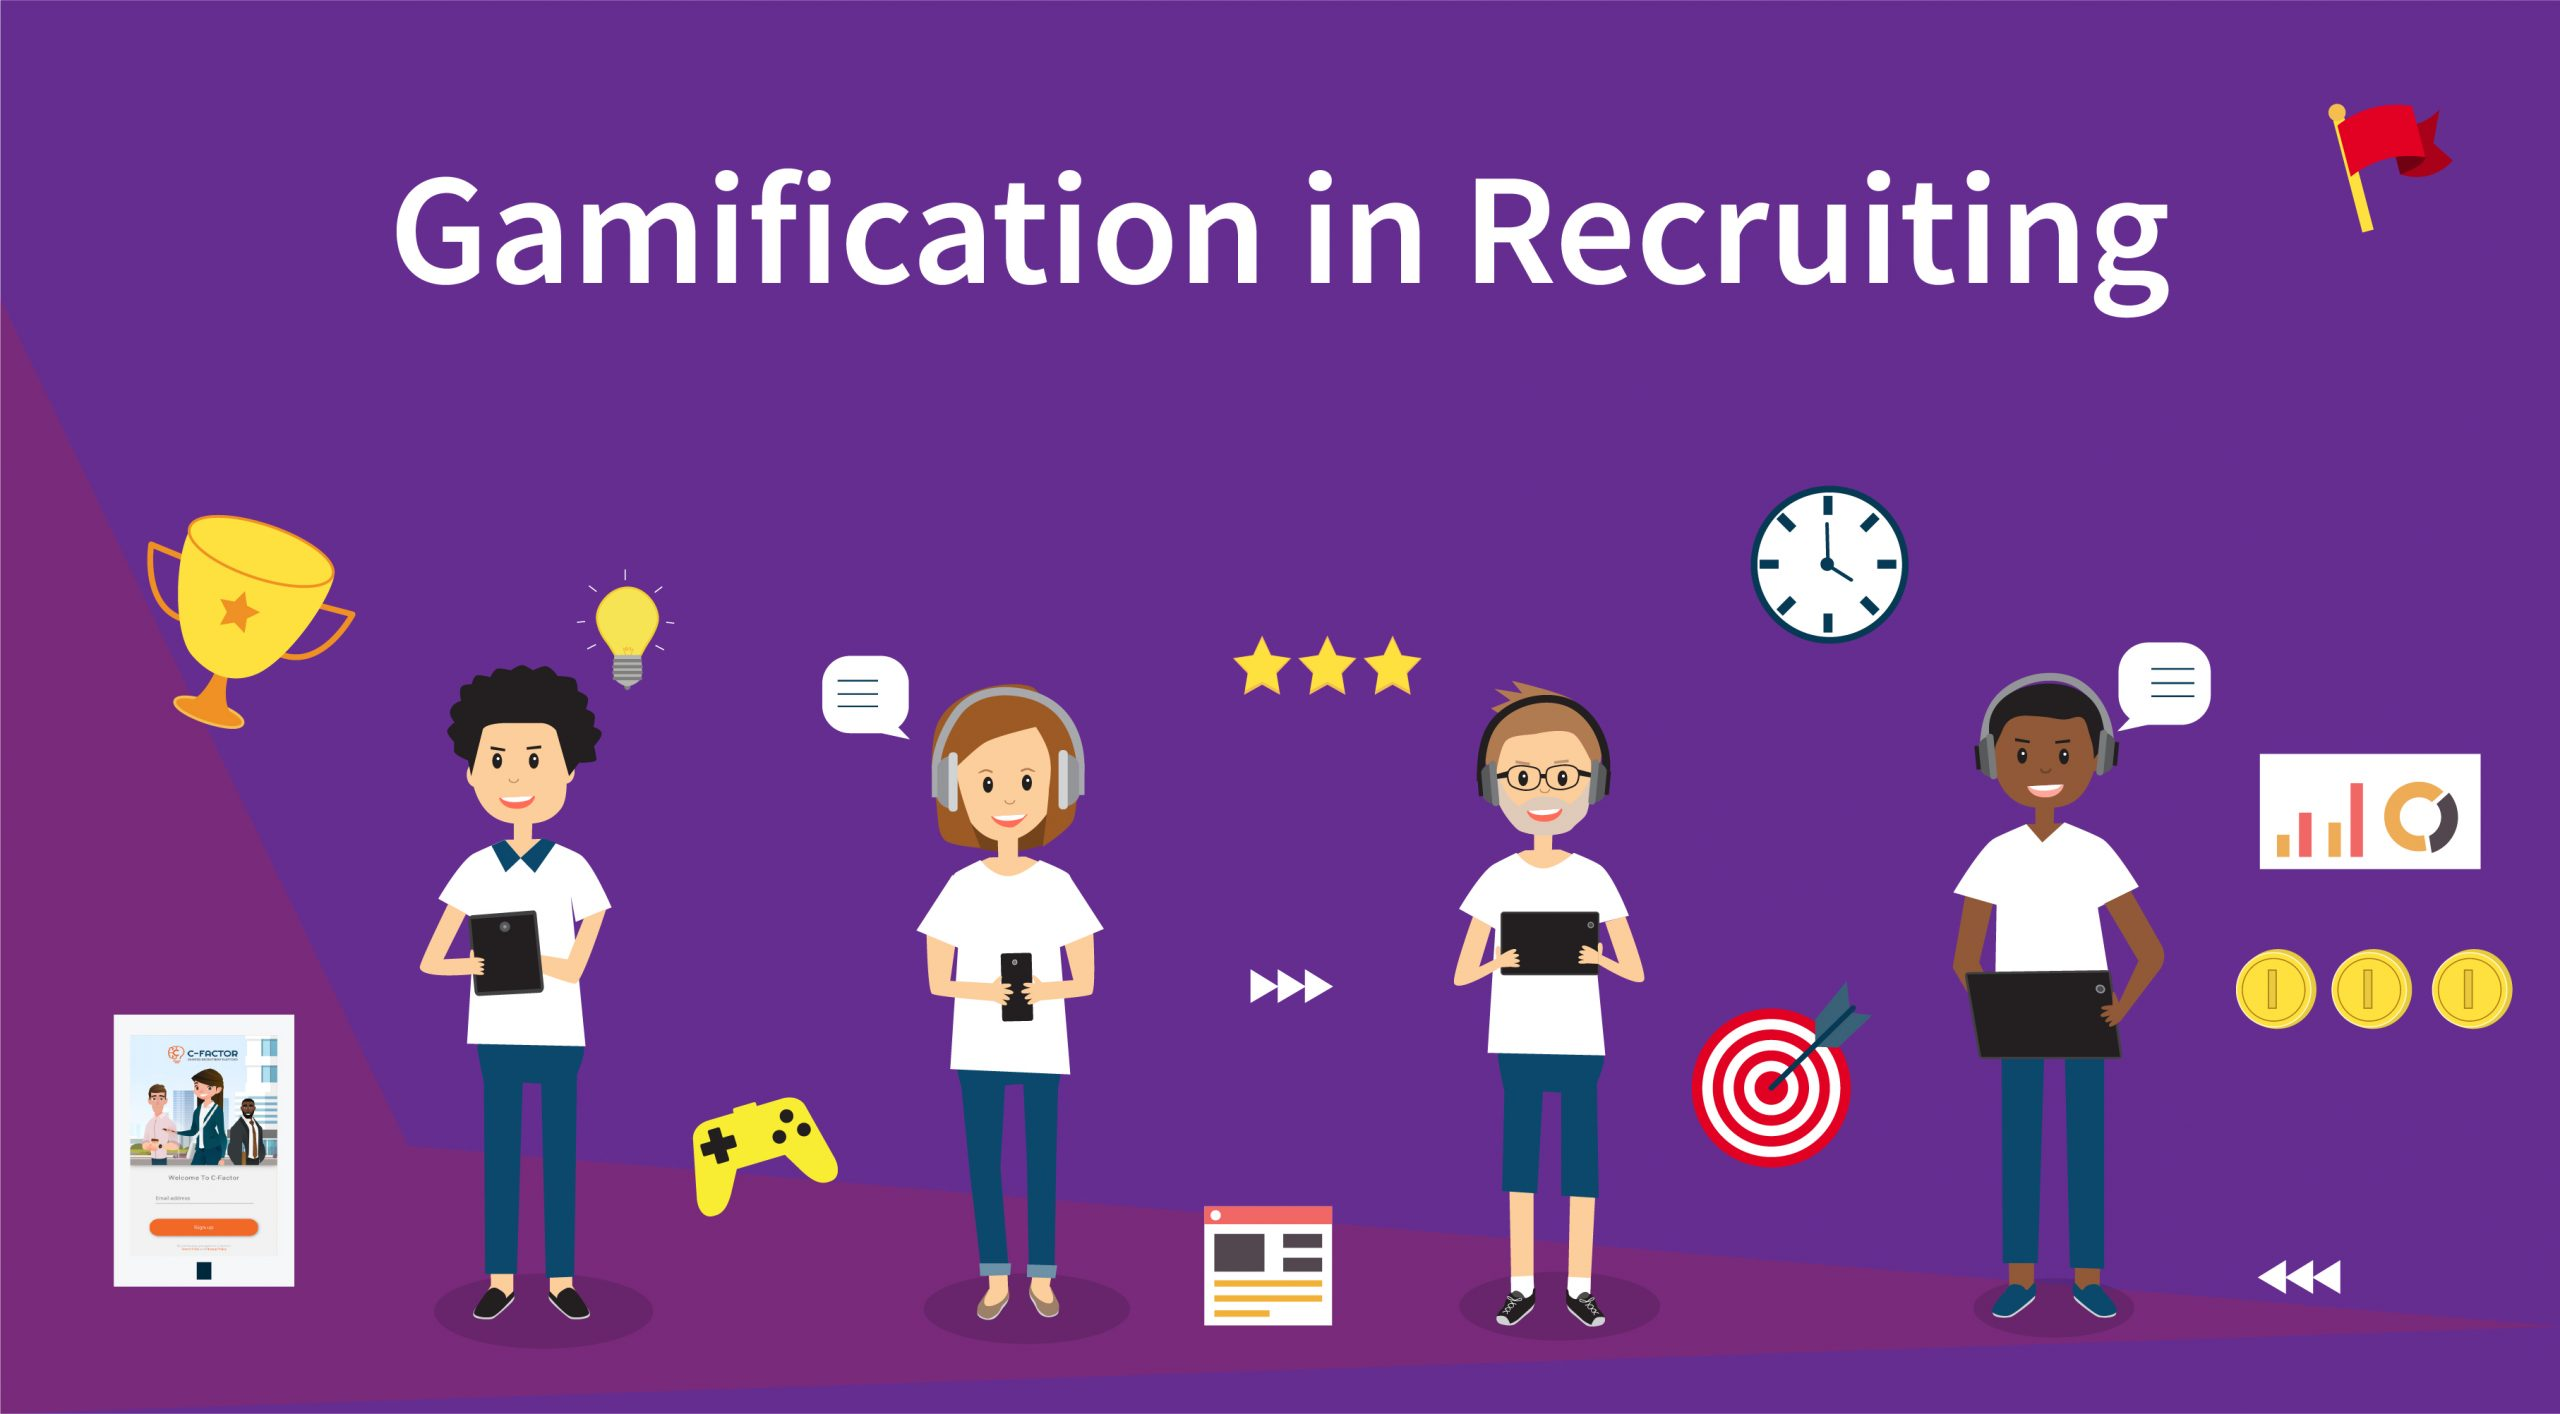 Gamification in Recruiting: Everything You Need to Know